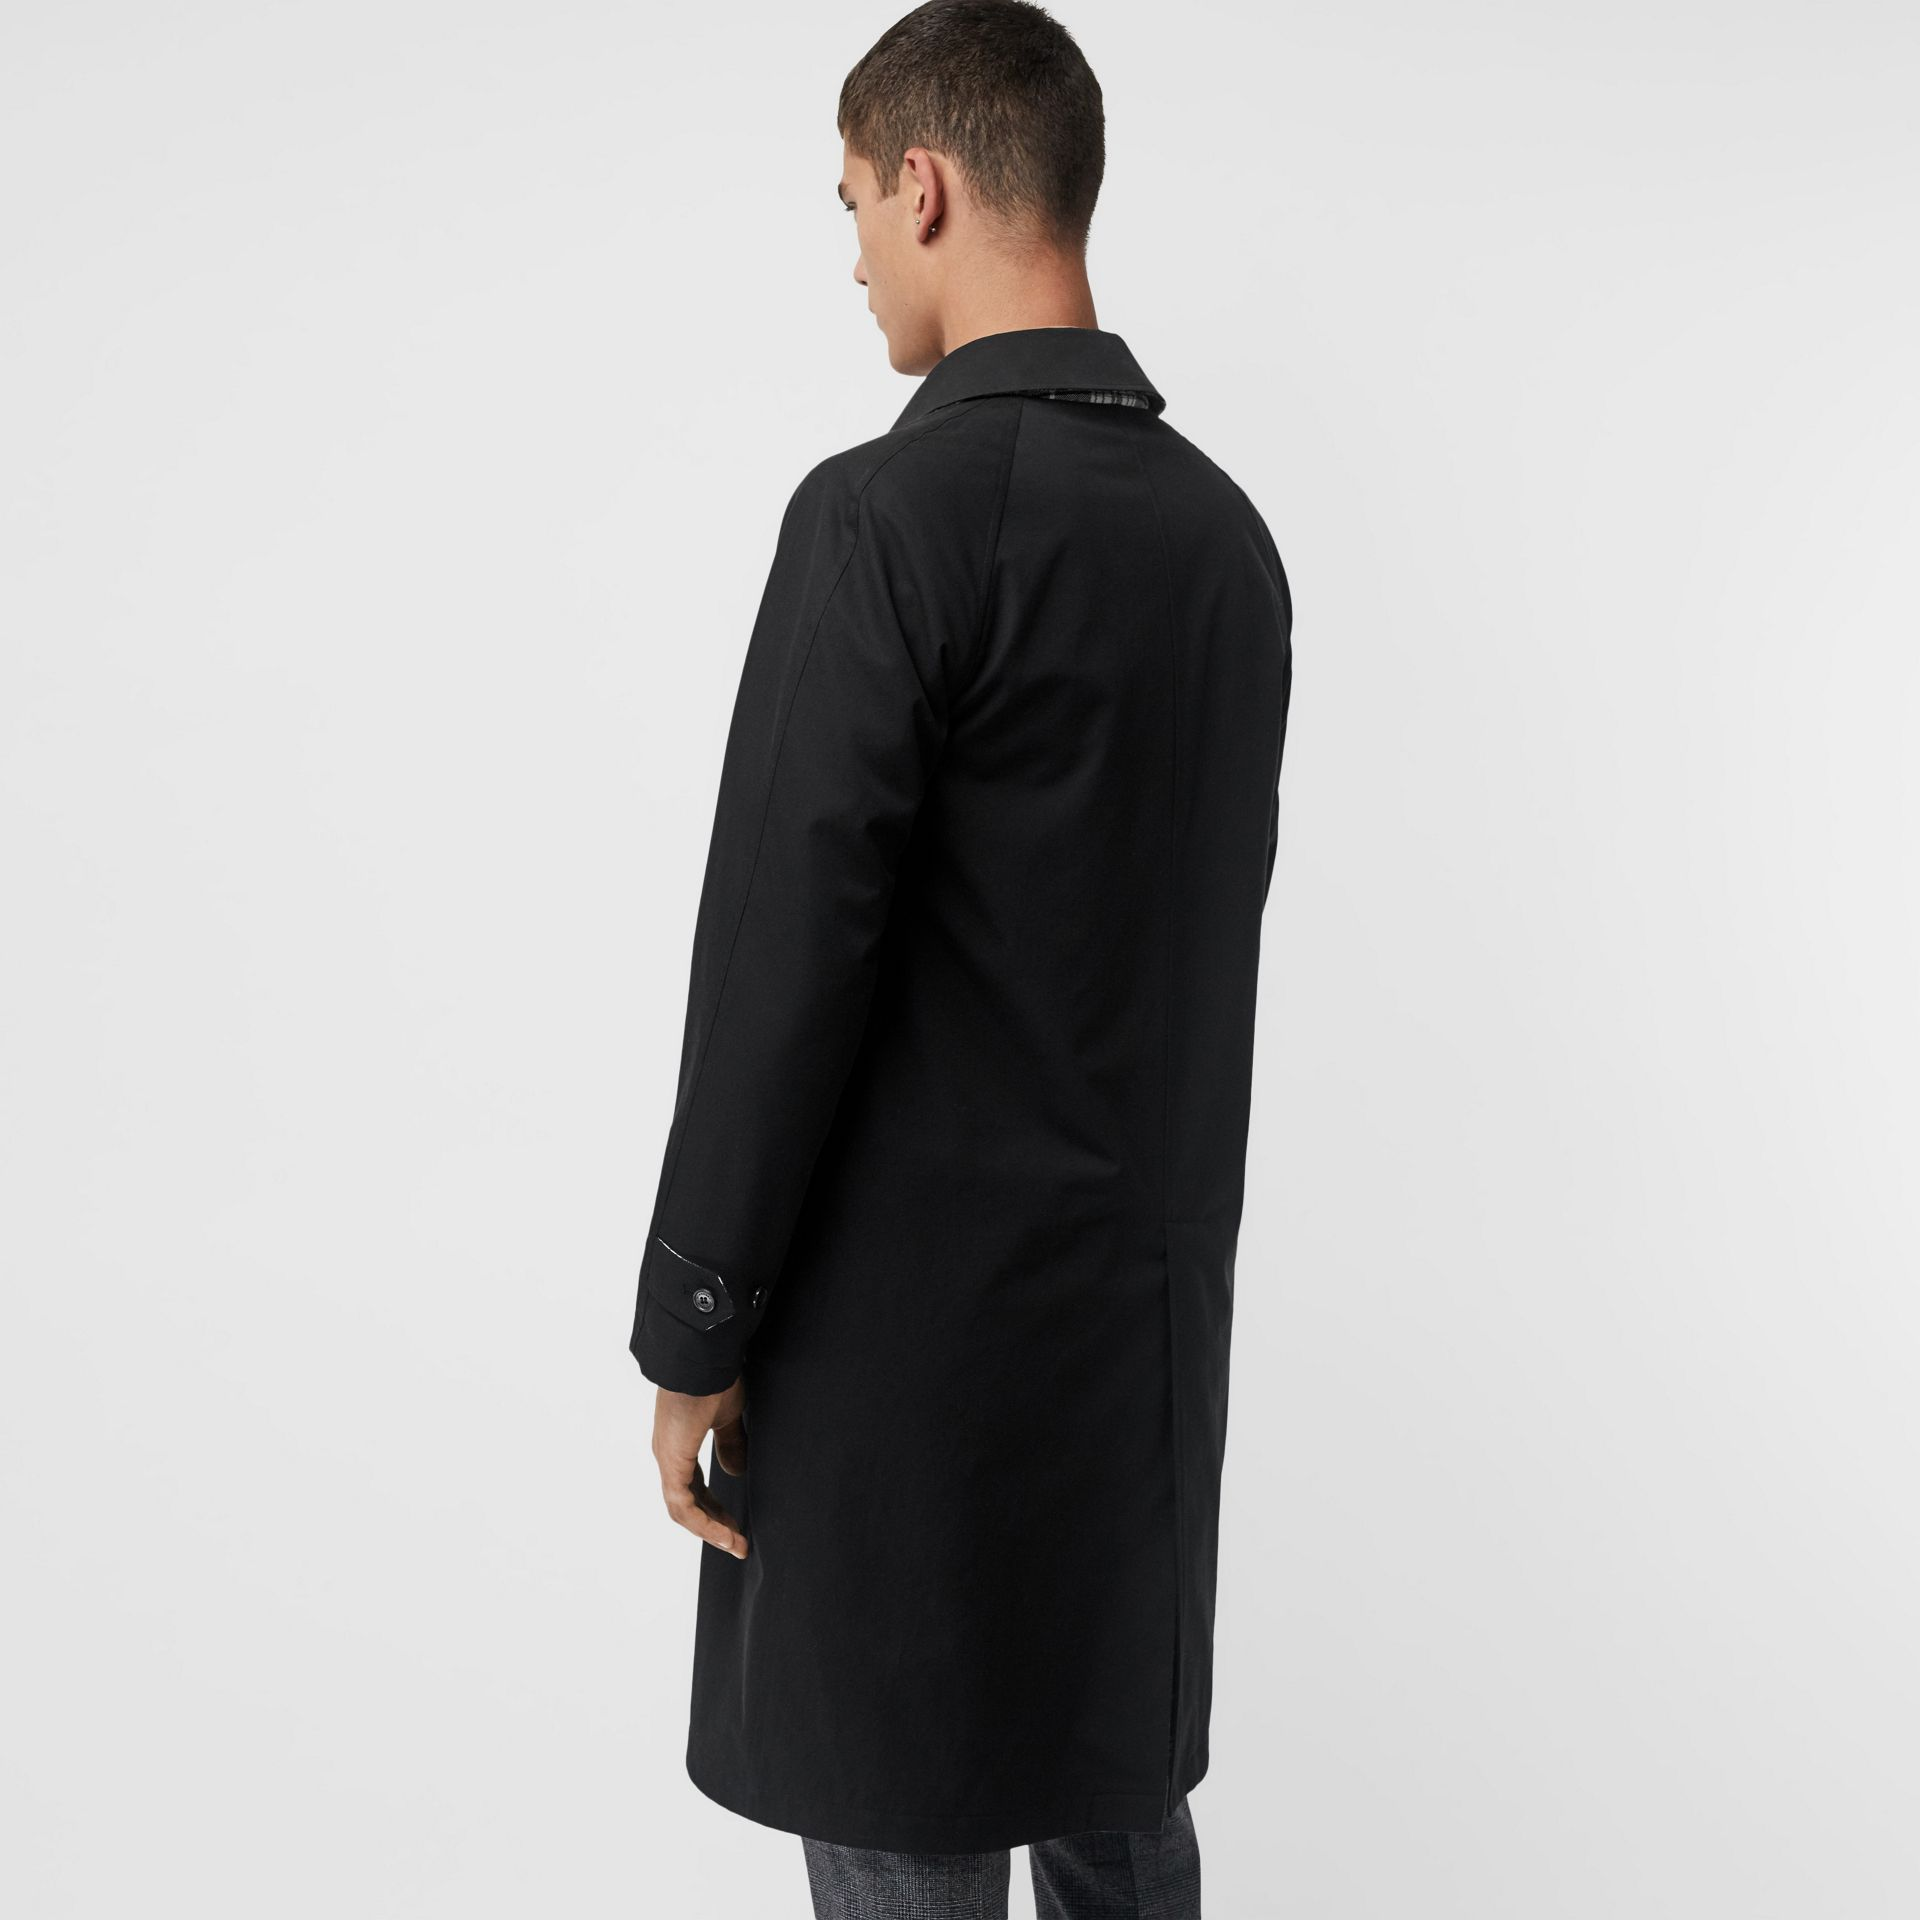 Reversible Wool Cashmere and Cotton Car Coat in Black - Men | Burberry - gallery image 2